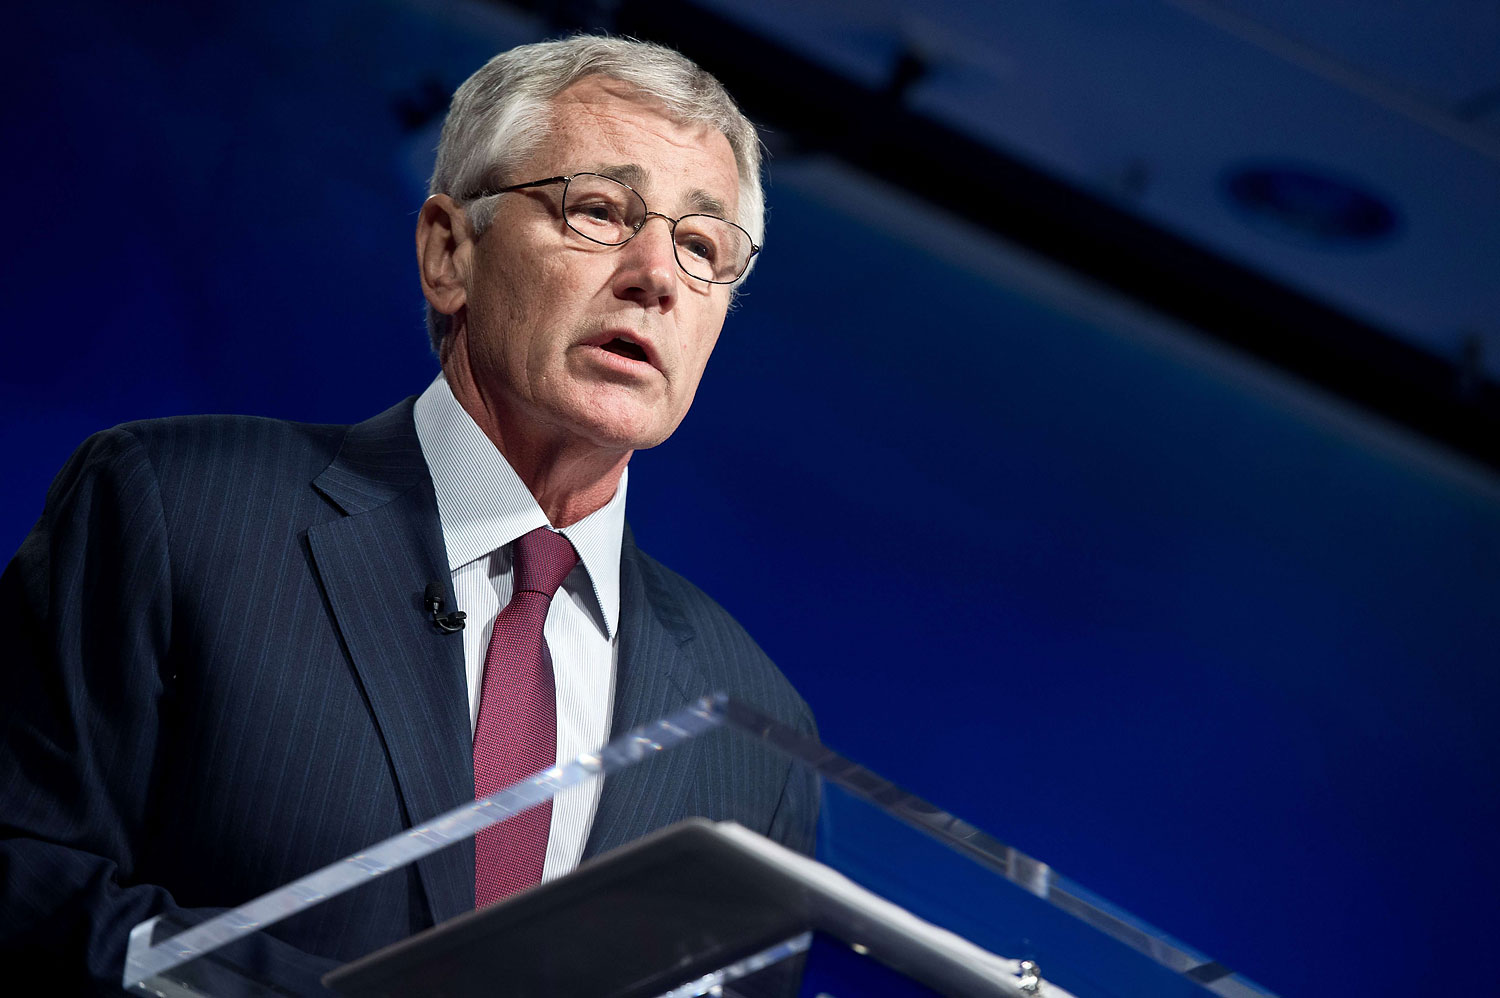 U.S. Defense Secretary Chuck Hagel speaks at the Wilson Center in Washington, D.C., on May 2, 2014.